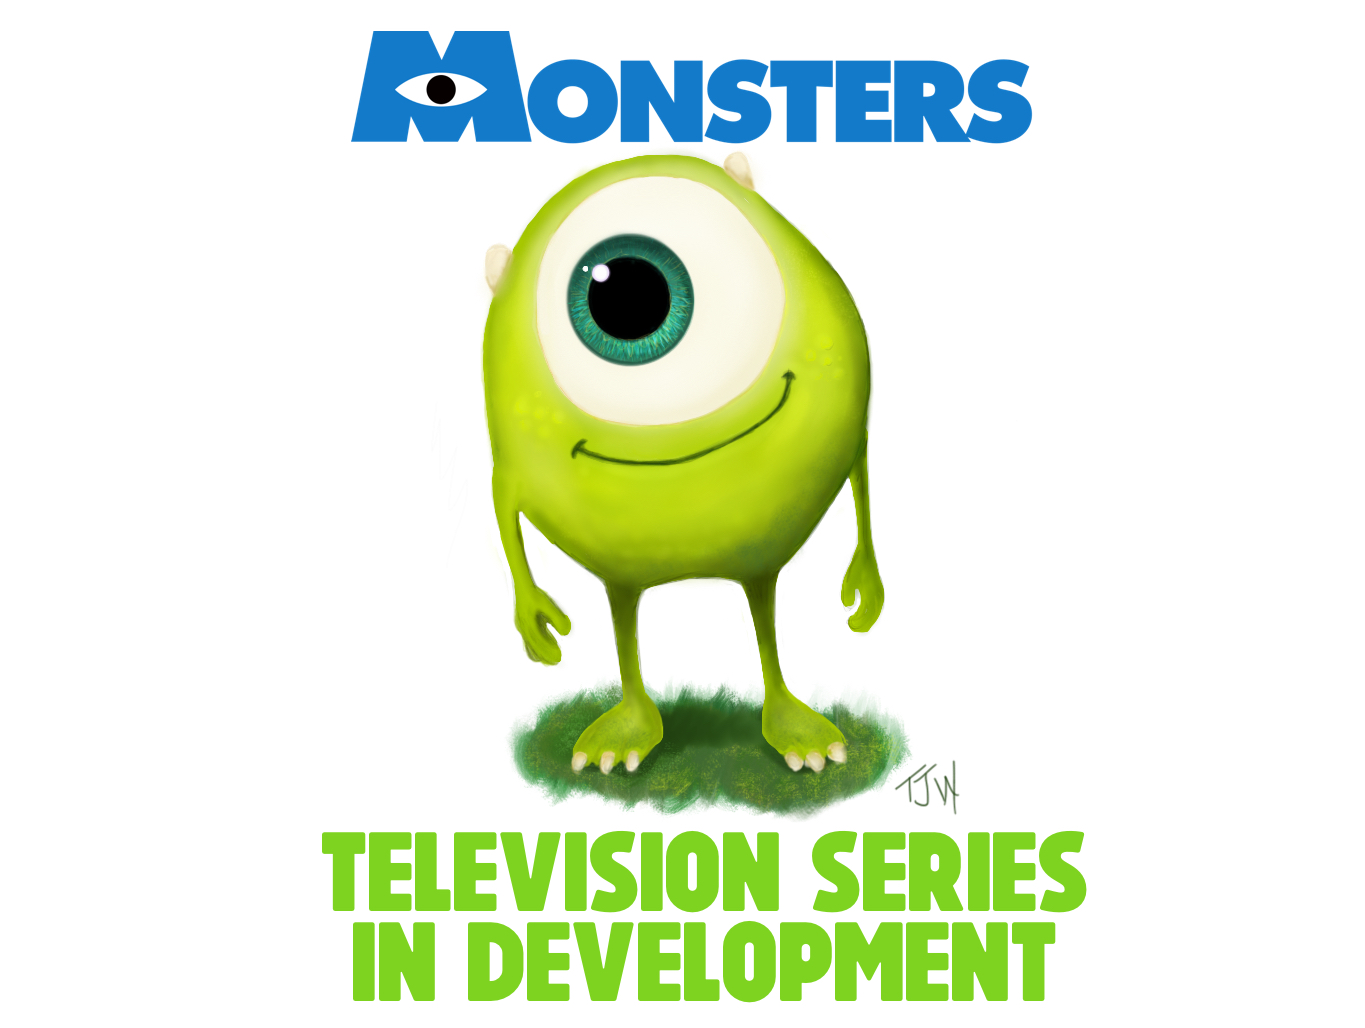 Television Series Of Monsters Themed Television Series In Development Exclusively On